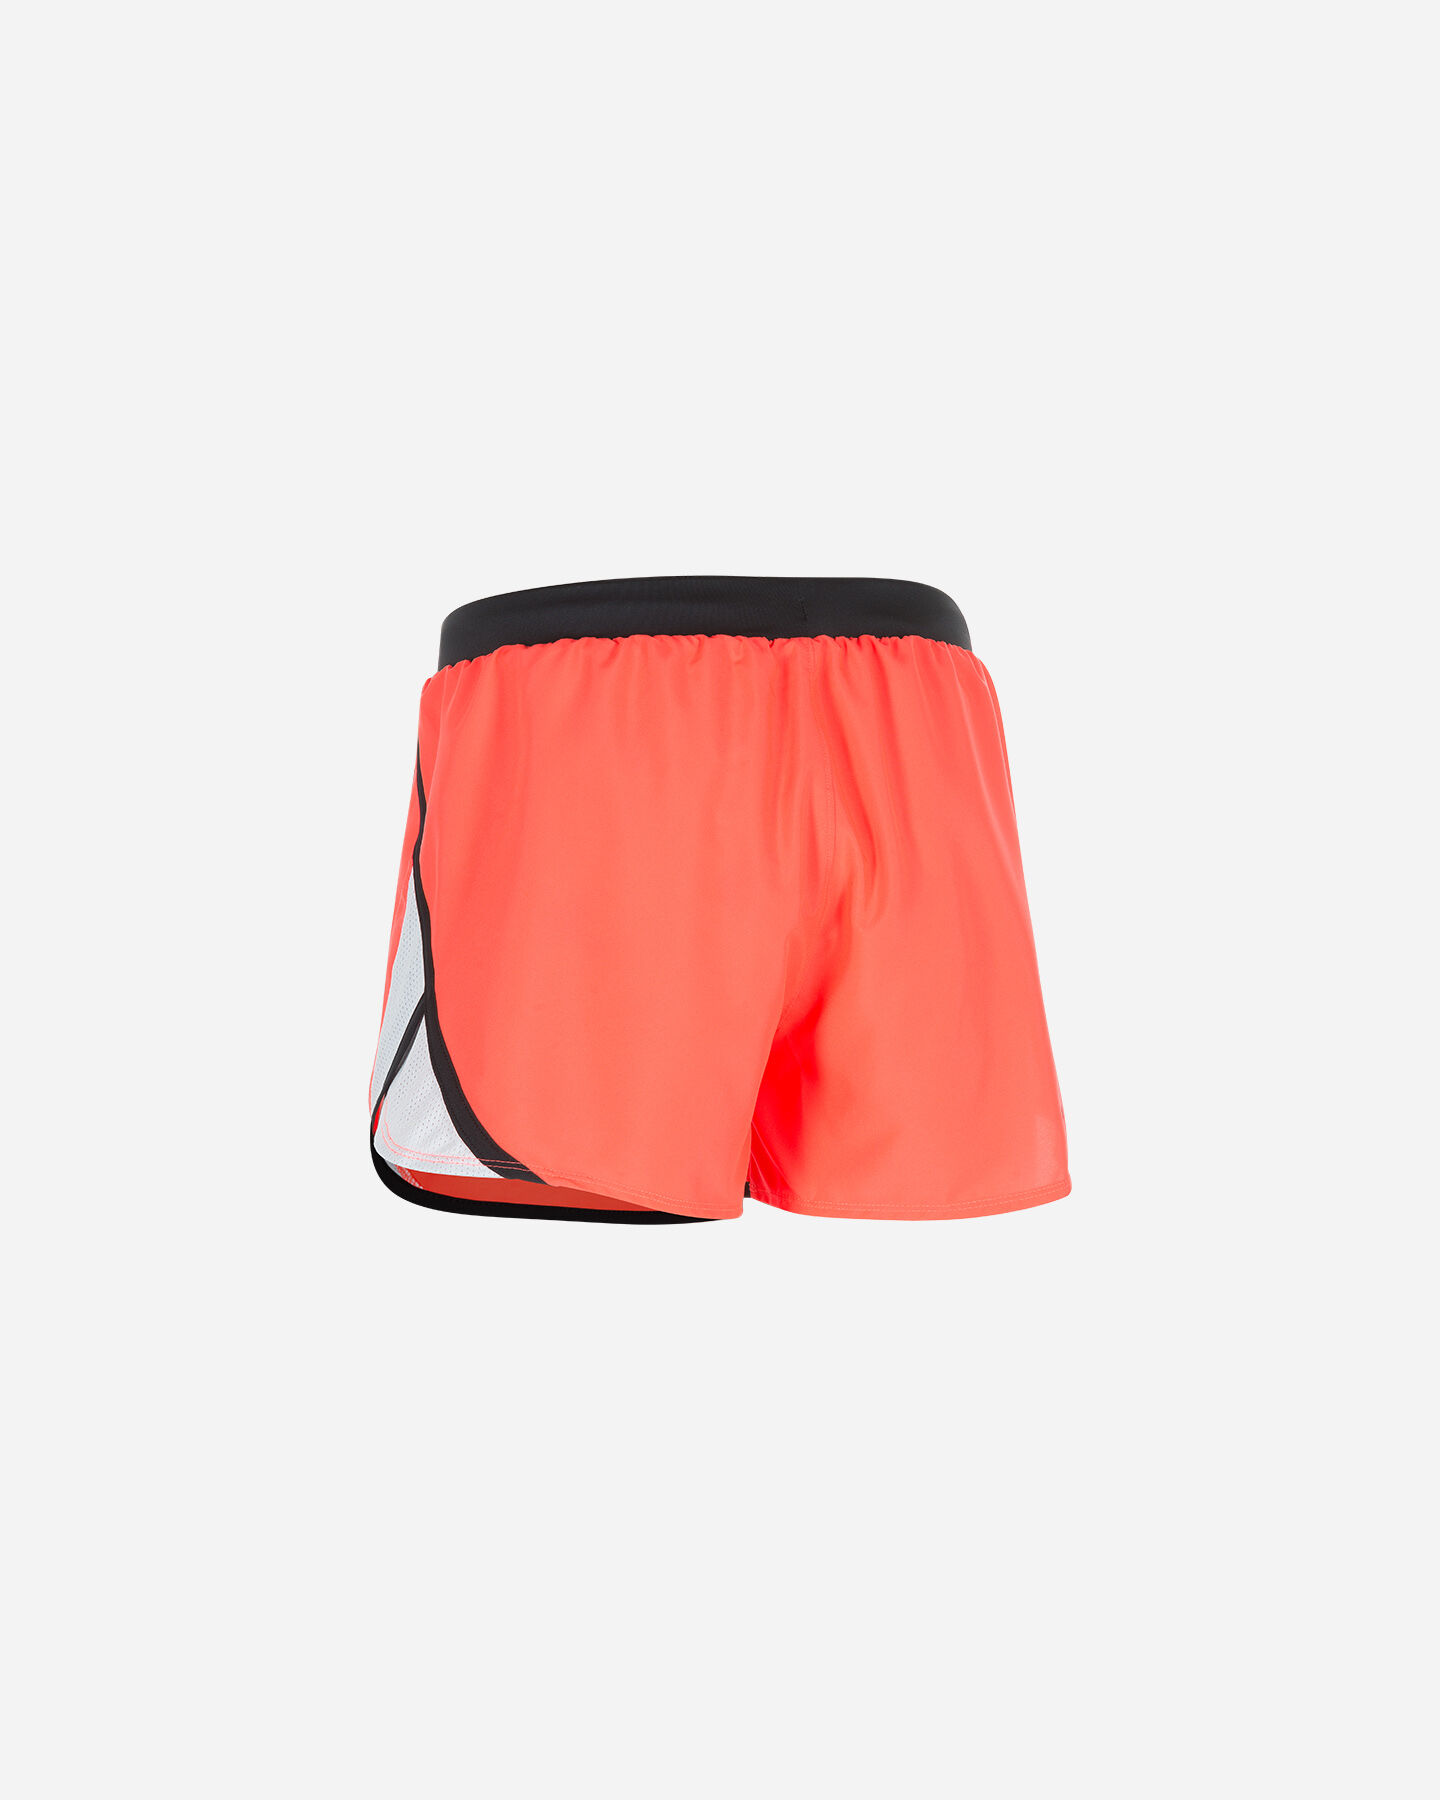 Short running UNDER ARMOUR FLY BY 2.0 WORMARK W S5168854 scatto 1